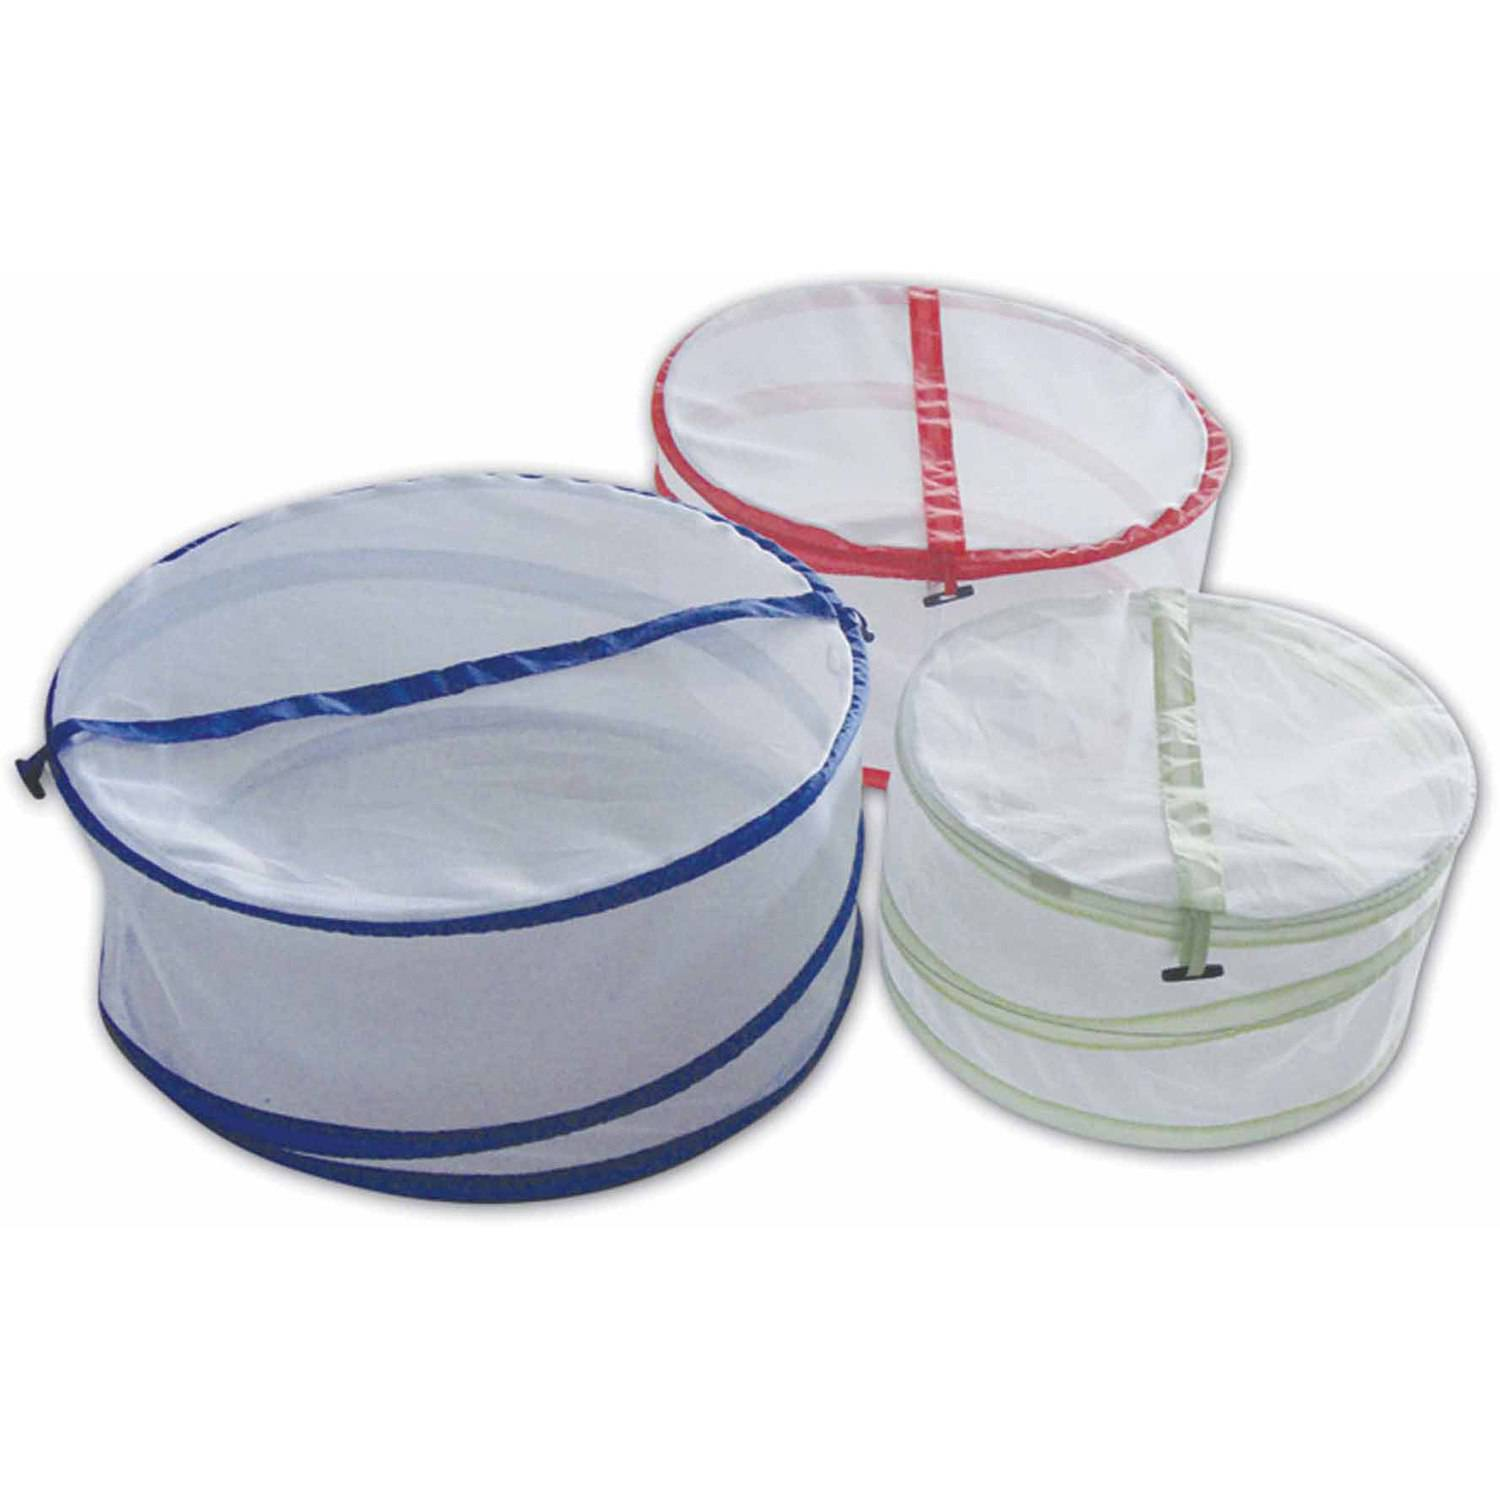 Mesh Collapsible Food Covers